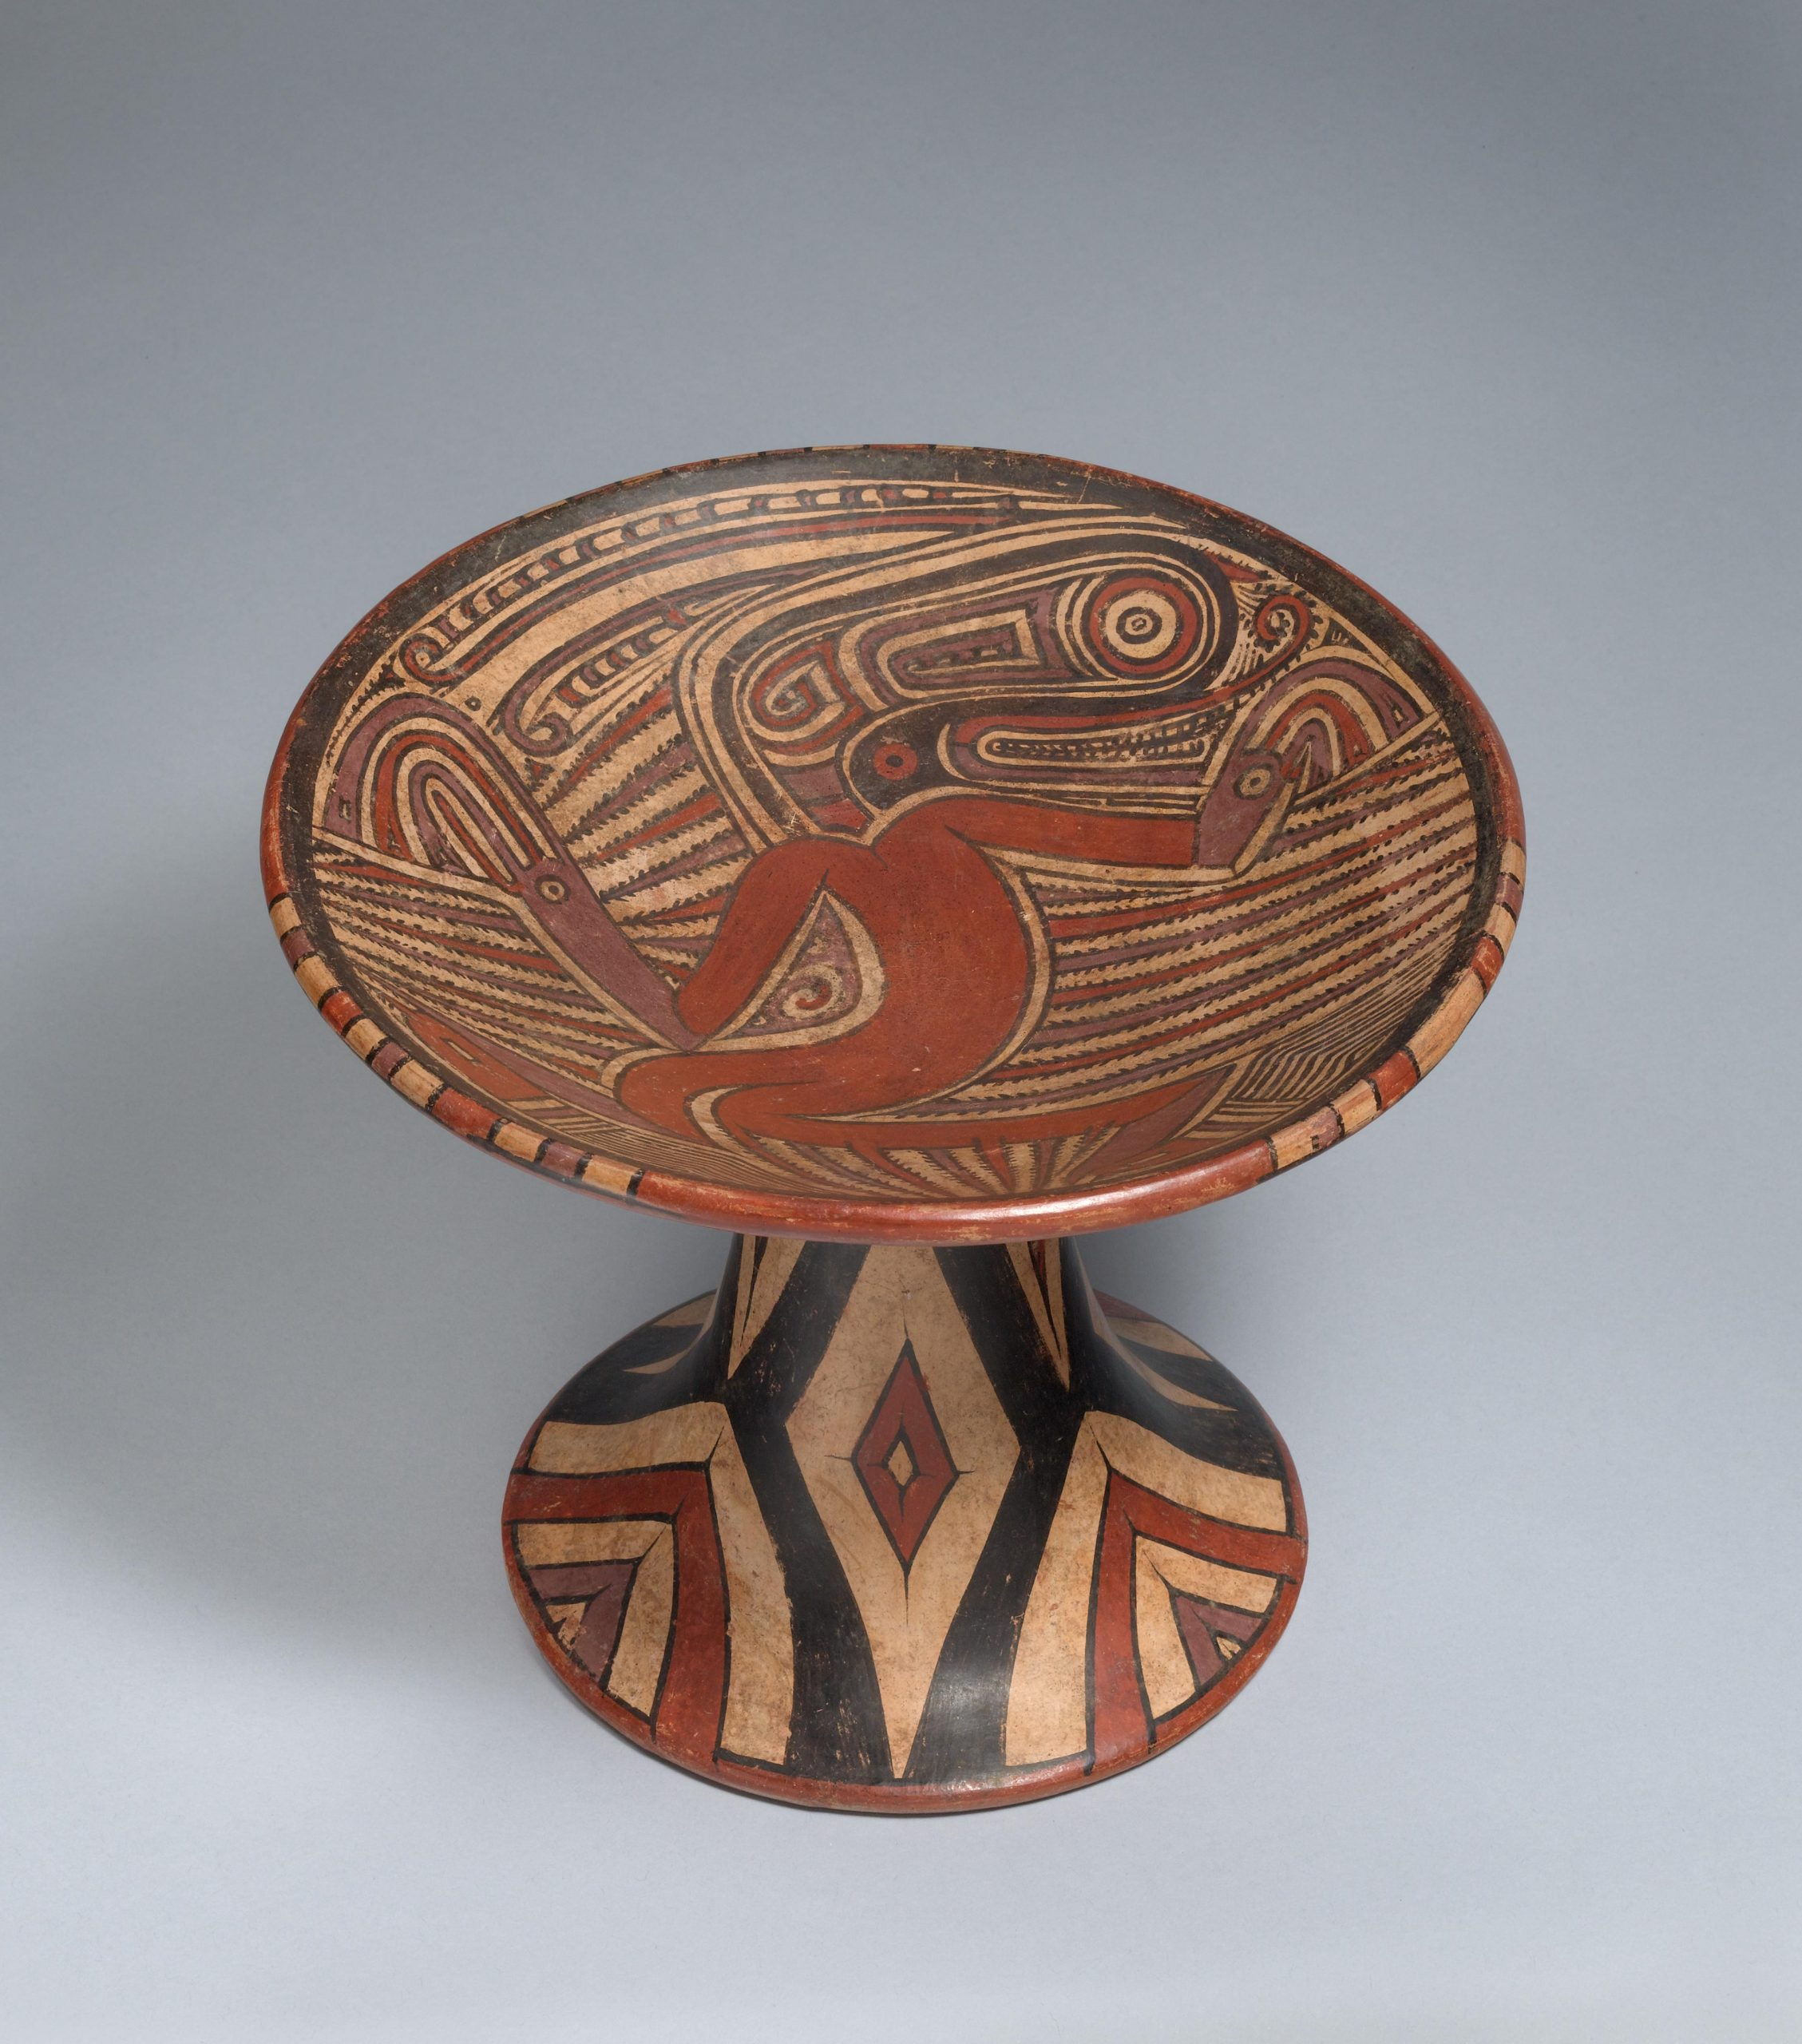 Pedestal plate with human and crocodile figures surrounded by patterns with geometric designs the on the base.